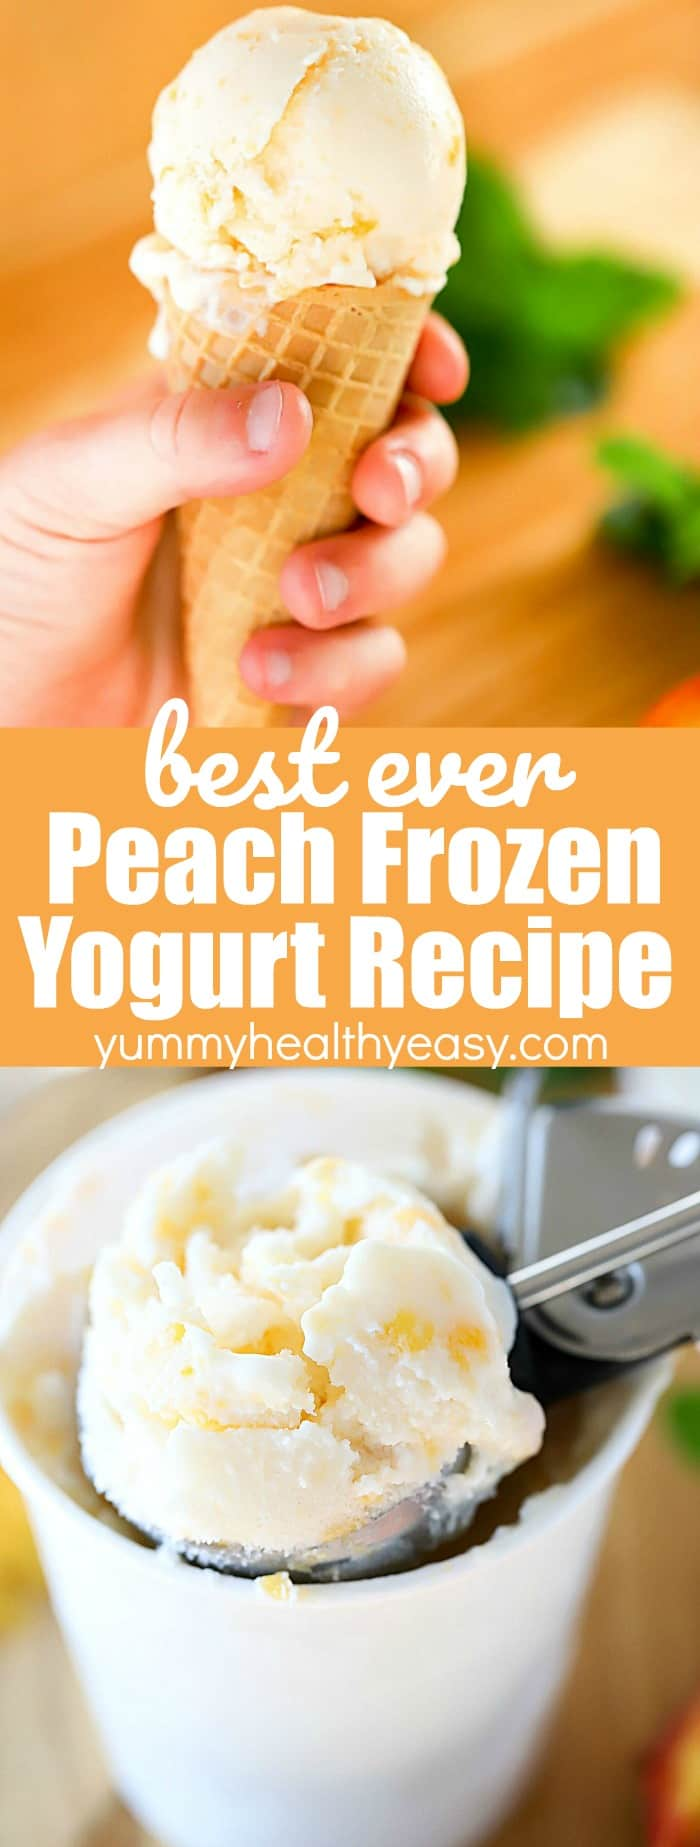 Cool down with a scoop of Peach Frozen Yogurt! Only five simple and healthy ingredients to the best frozen yogurt recipe you'll ever try!Sick of going to the ice cream store and buying expensive frozen yogurt? I've got you covered for the BEST Homemade Peach Frozen Yogurt recipe that is so cheap to make and so easy - you will be shocked! #AD #frozenyogurt #dessert #peach #easy #recipe #frozen #summer via @jennikolaus